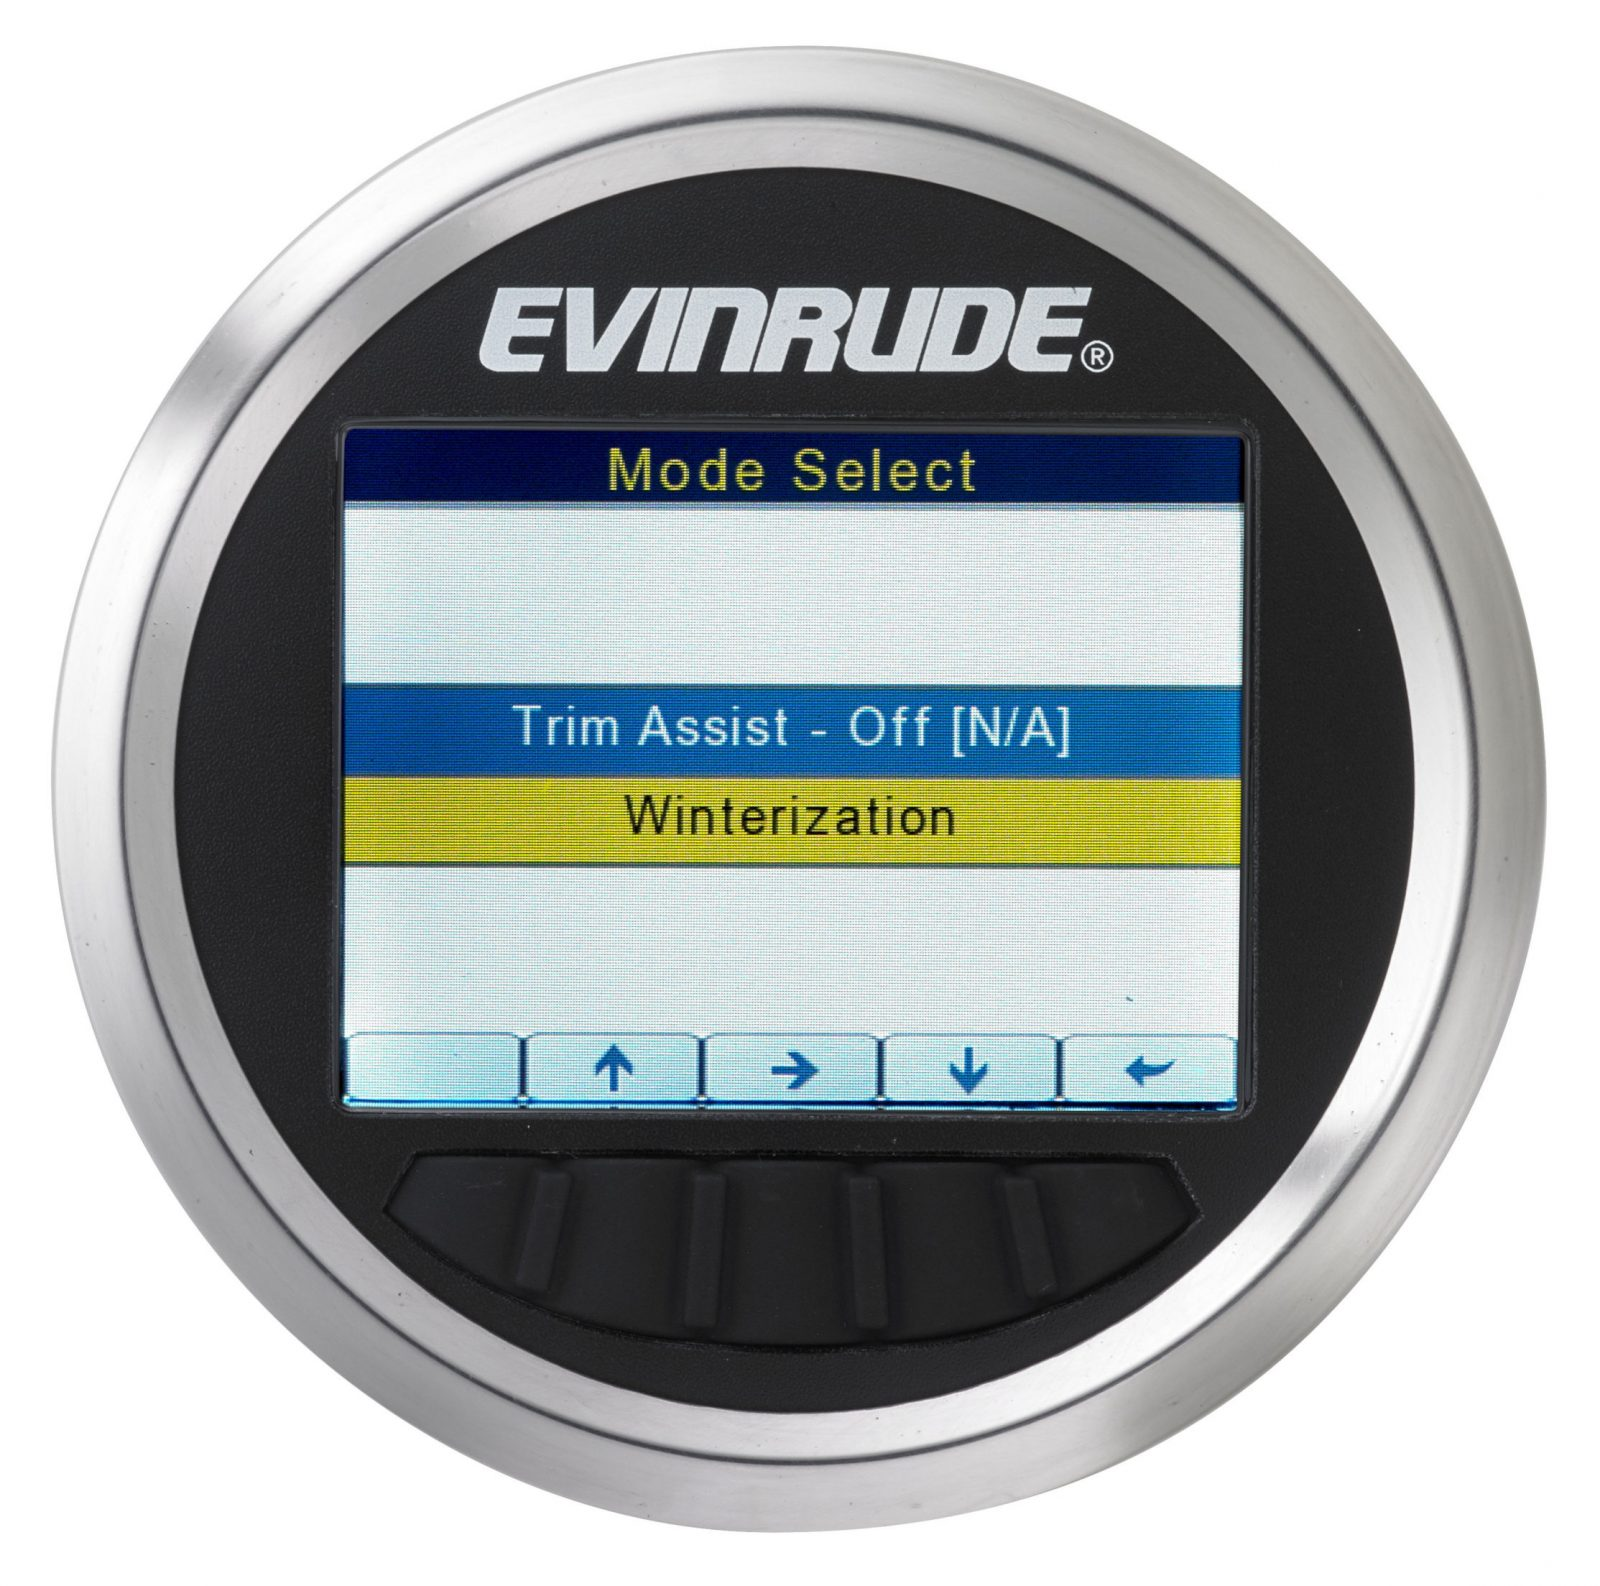 Evinrude Releases New Nautilus Engine Gauges - Panbo